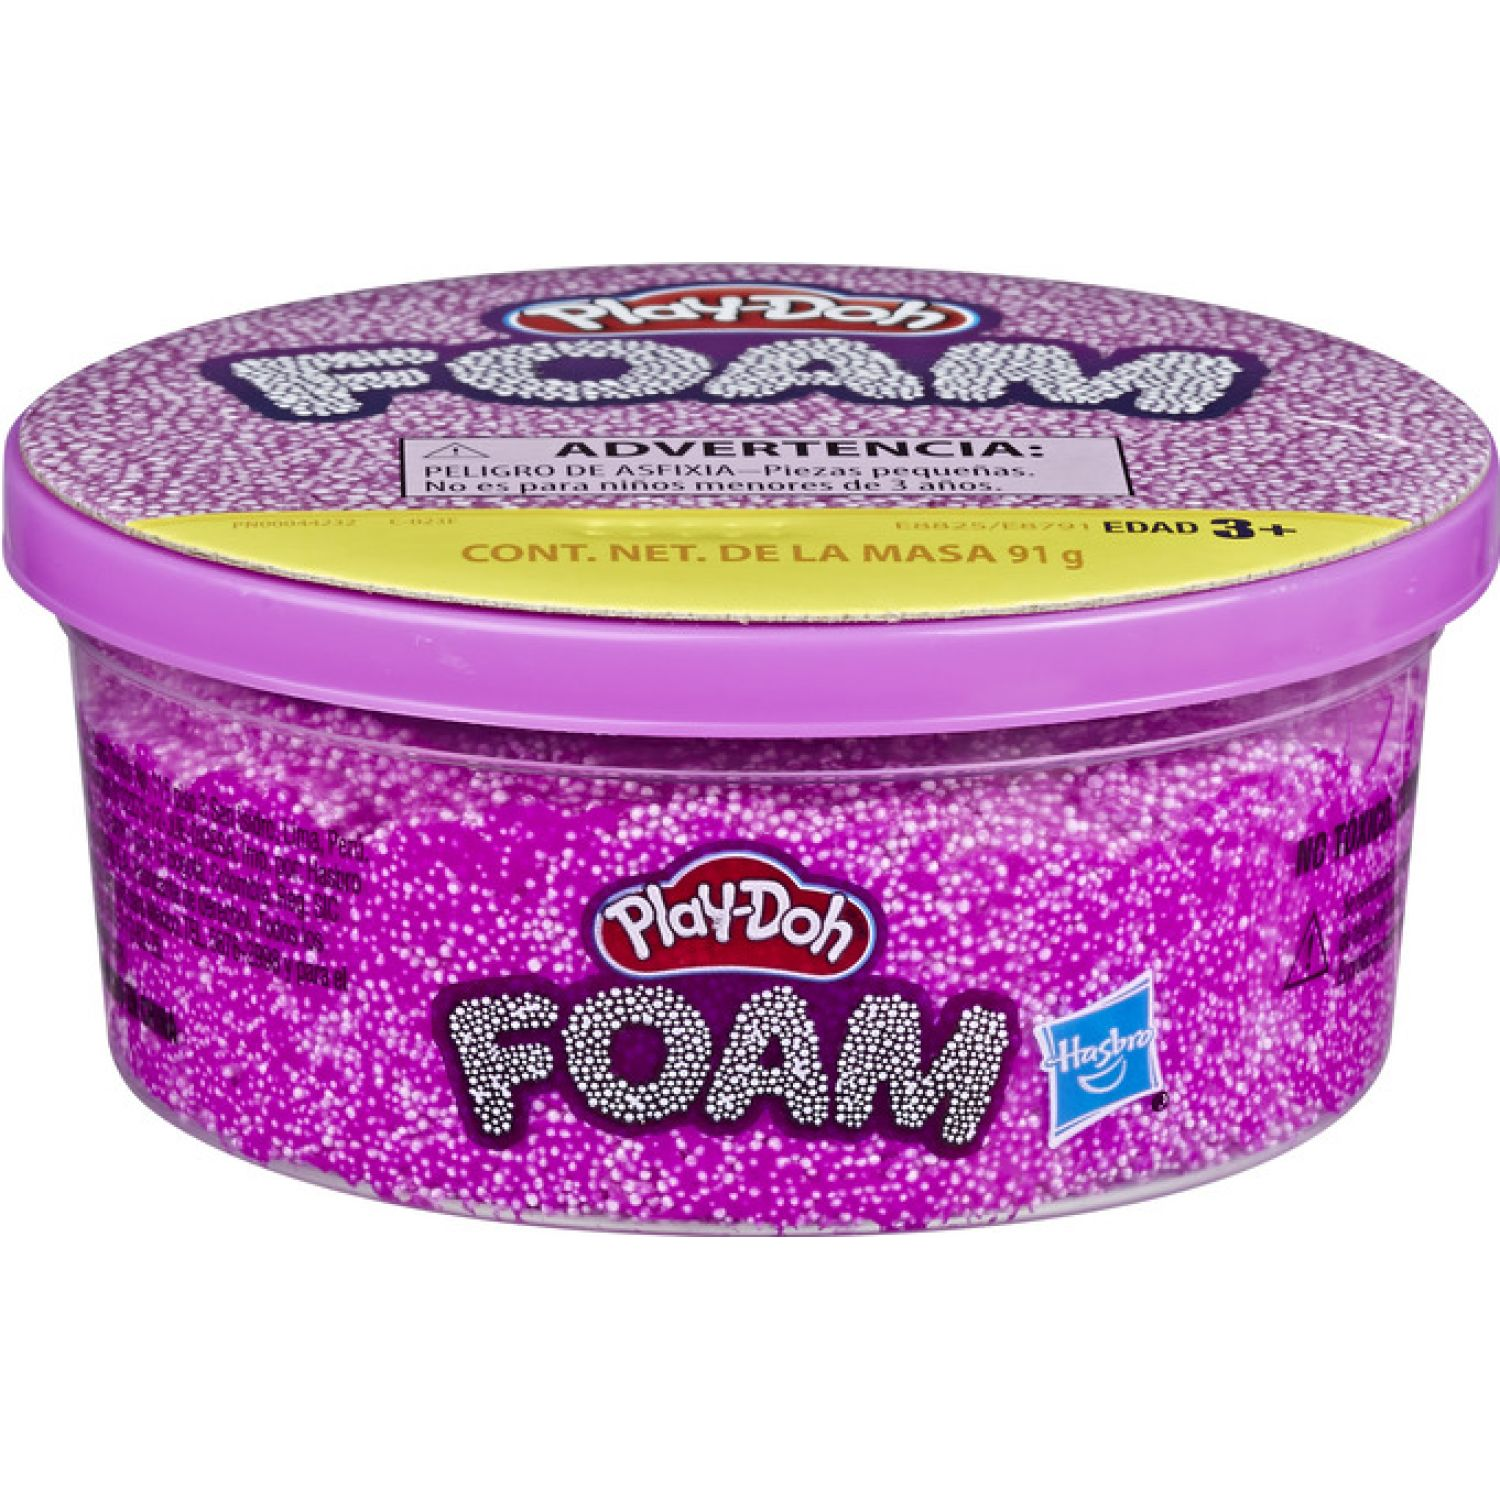 PLAY-DOH Pd Foam Purple Varios Modelado y Escultura